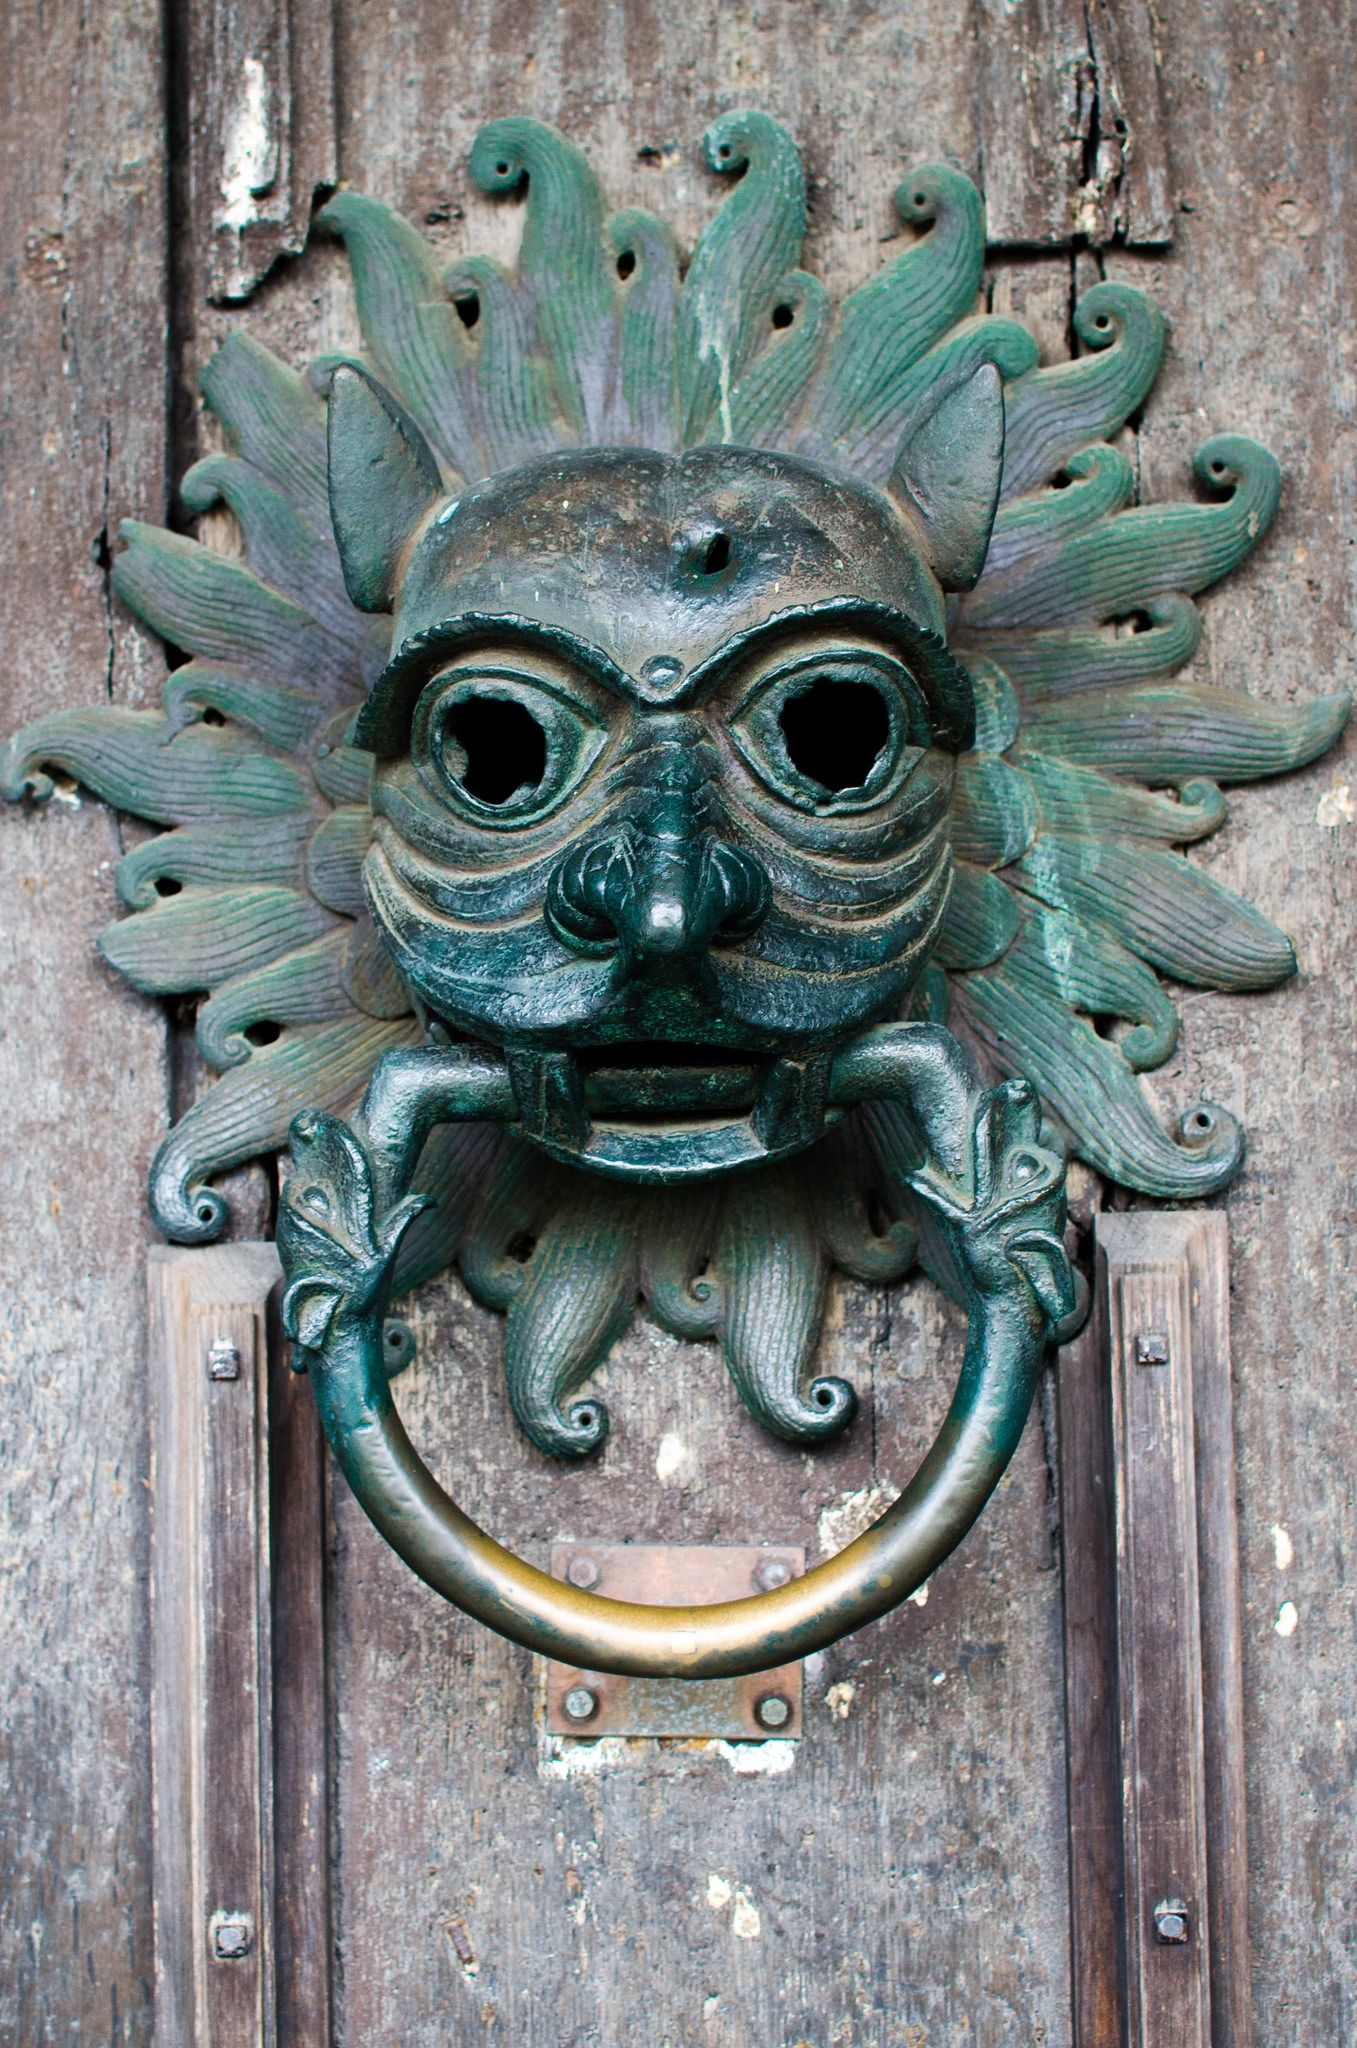 The Sanctuary Knocker - Durham Cathedral